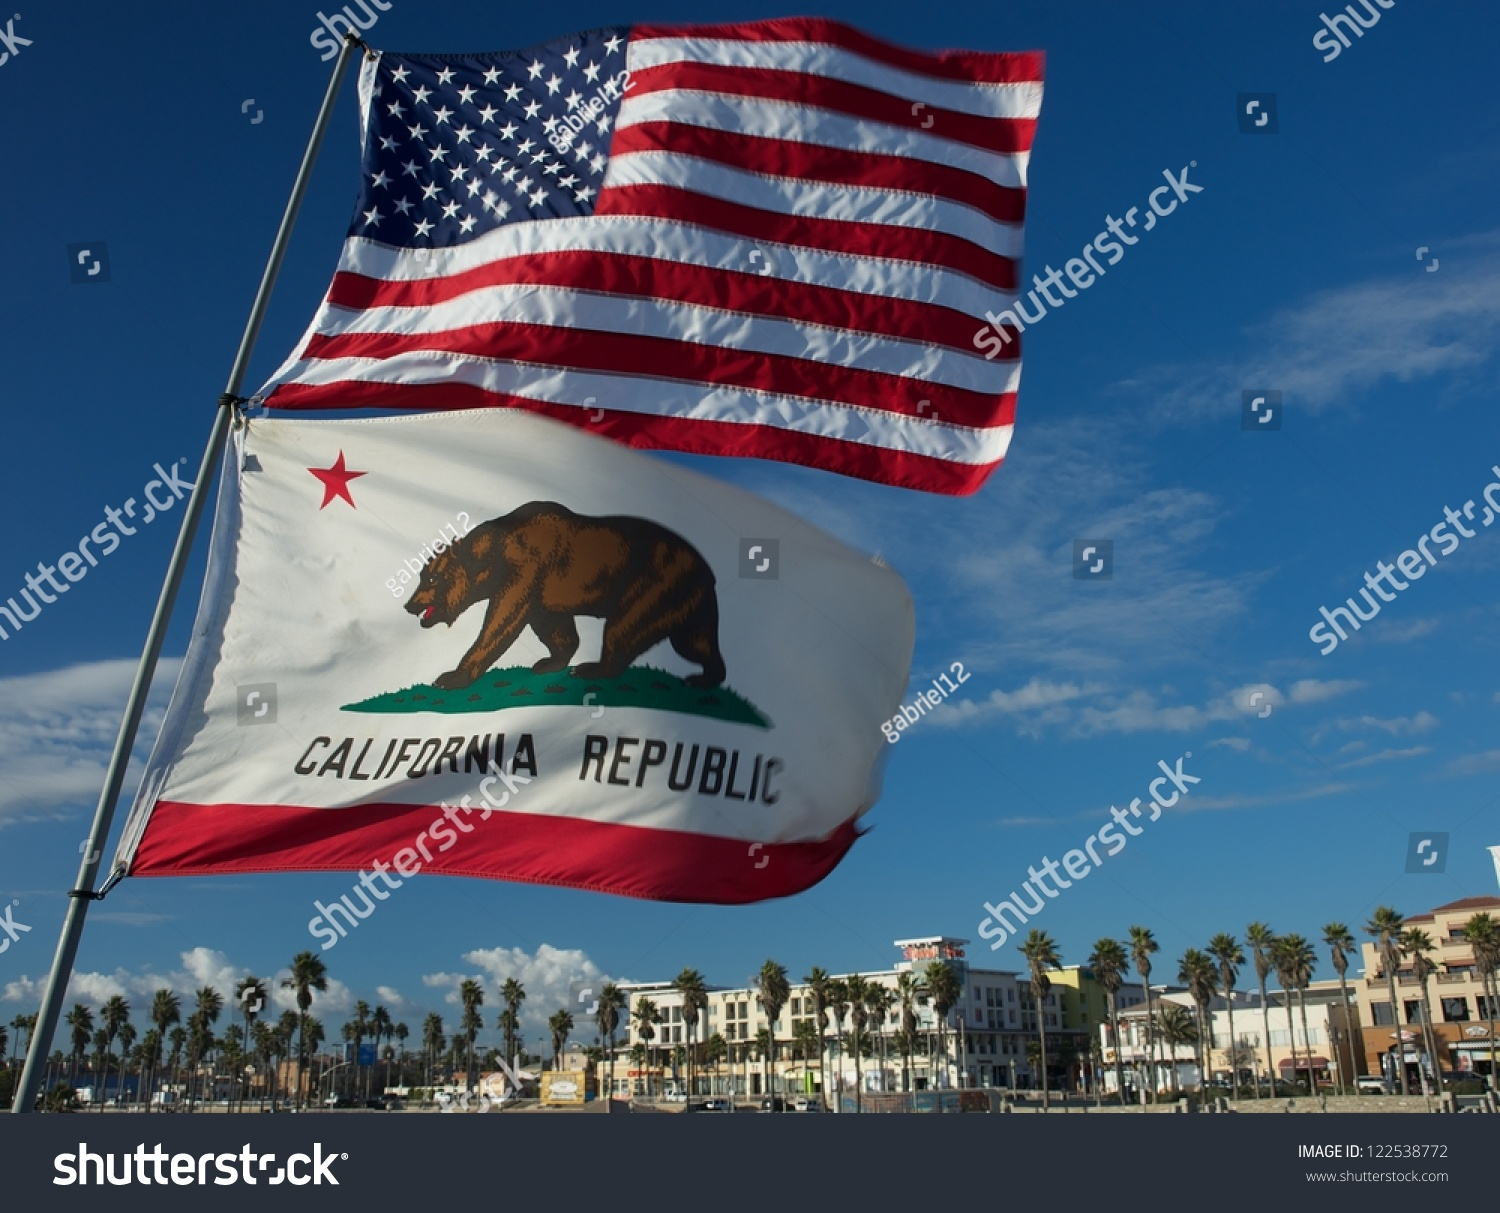 Huntington beach california stock photos and pictures getty images - Us And California State Flag Fluttering On Huntington Beach California